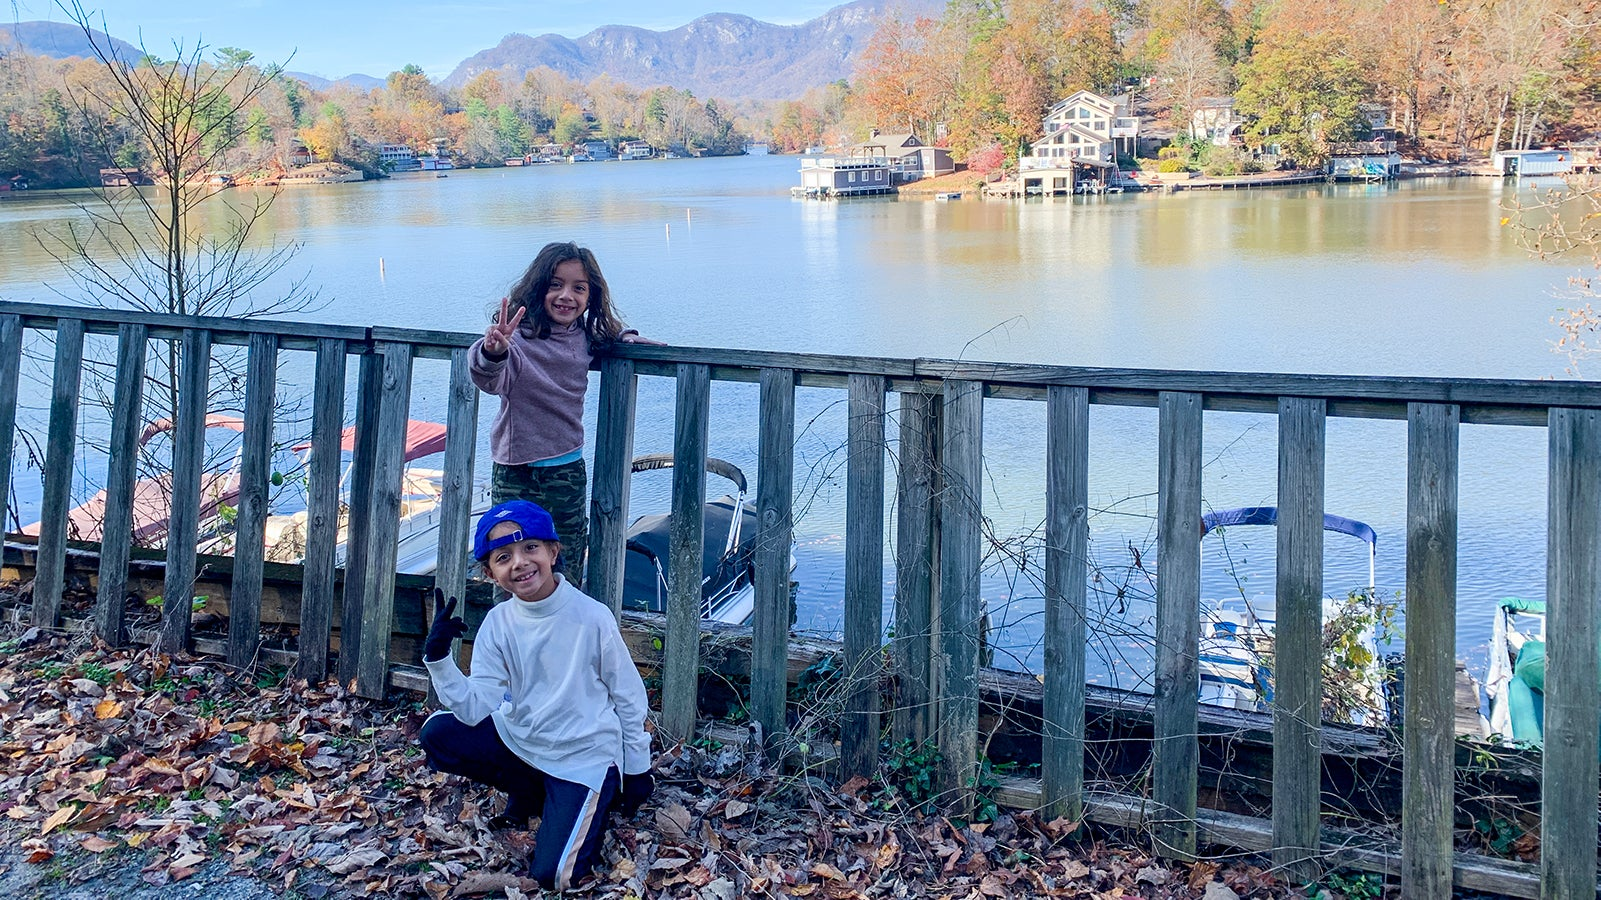 Our first family trip during the pandemic: An escape to mountains in North Carolina